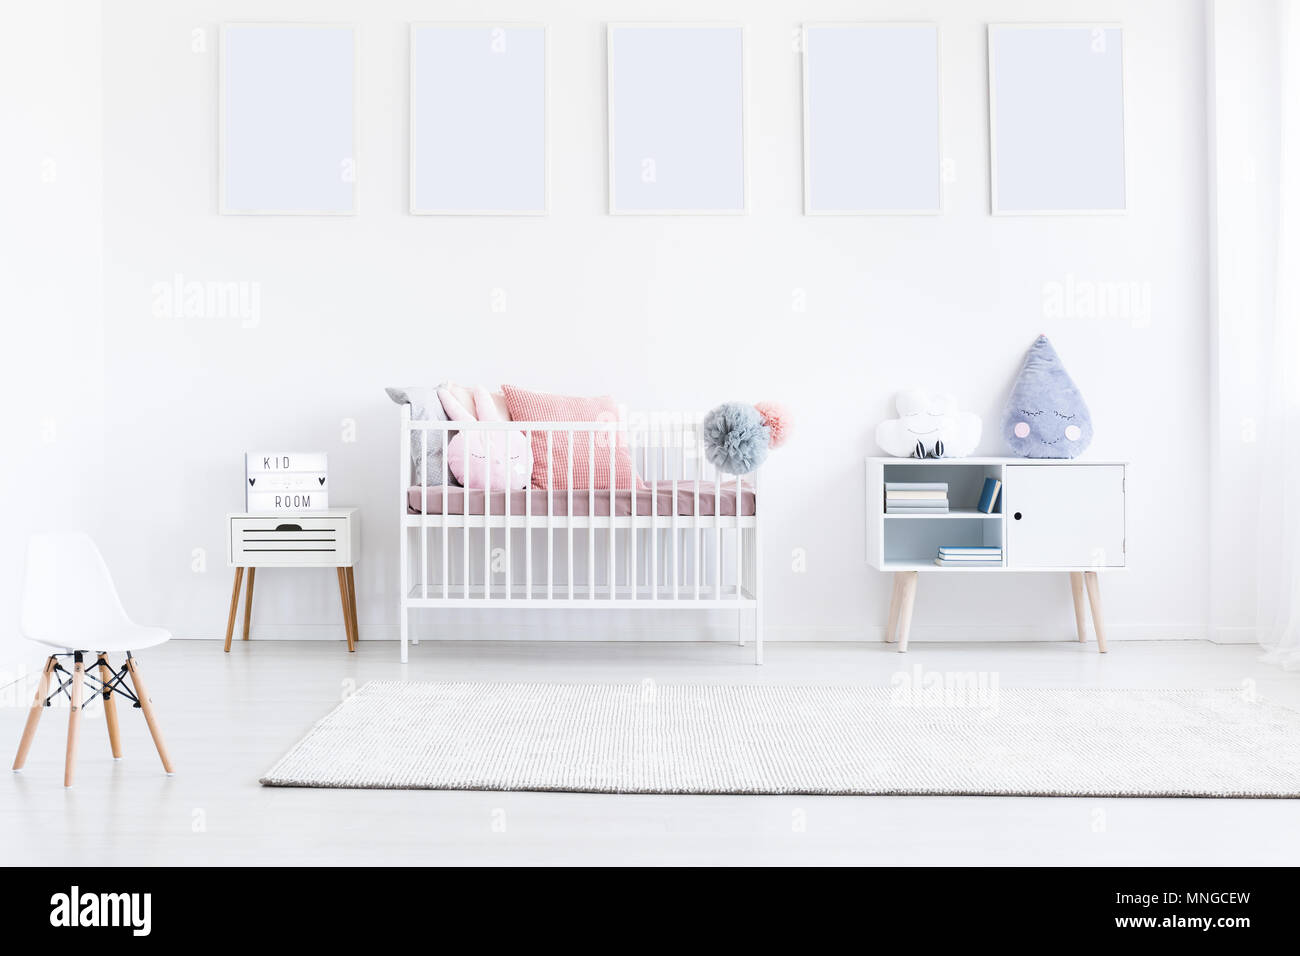 Gallery of mockups of white posters in girl's bedroom with small white chair and pink pillows on bed Stock Photo